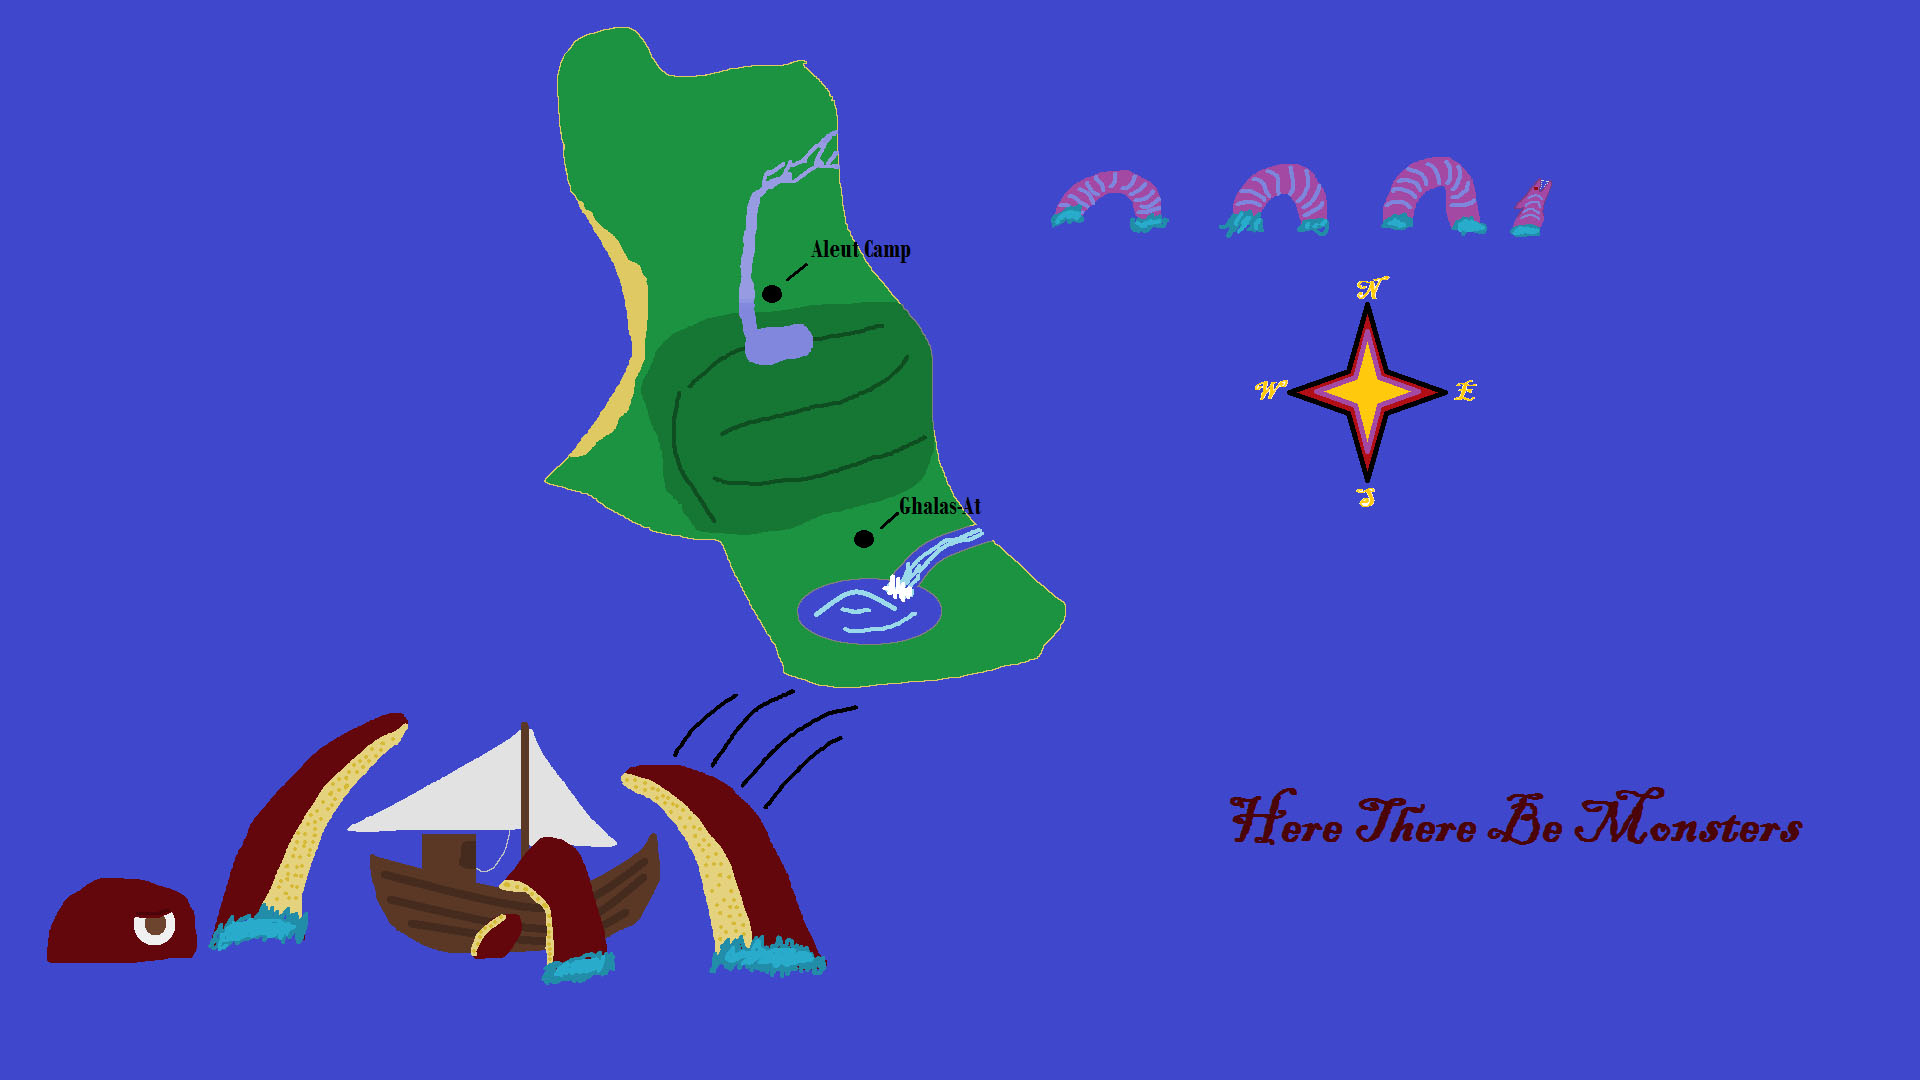 tommy s map of the island of the blue dolphins for school the sea monsters were not part of the assignment